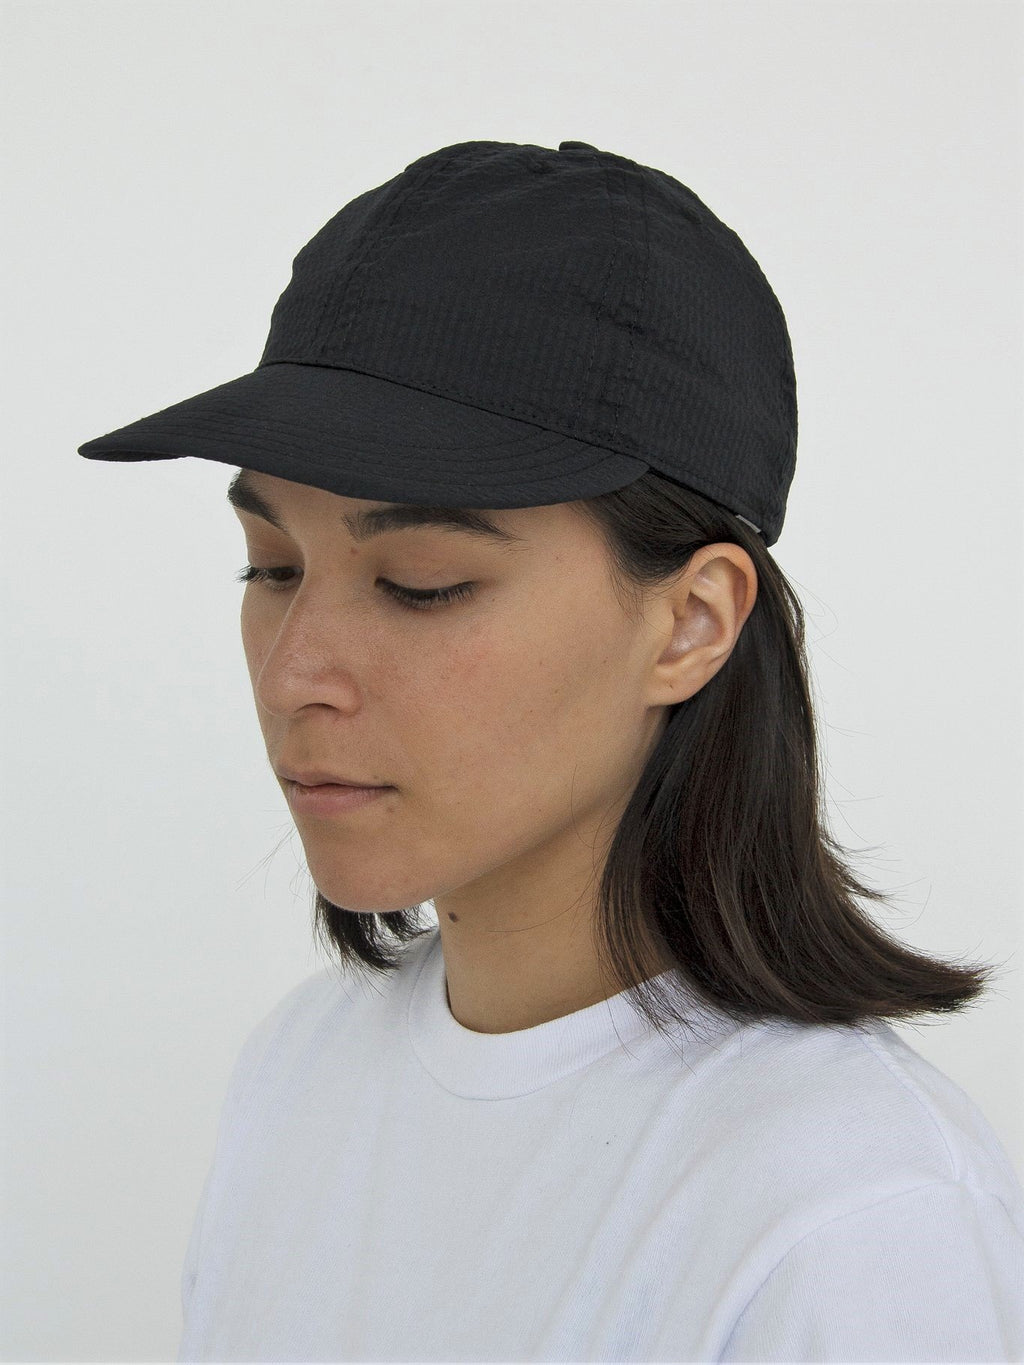 Namu Shop - paa Stretch Floppy Ball Cap -  Japanese Cotton Elastane Seersucker